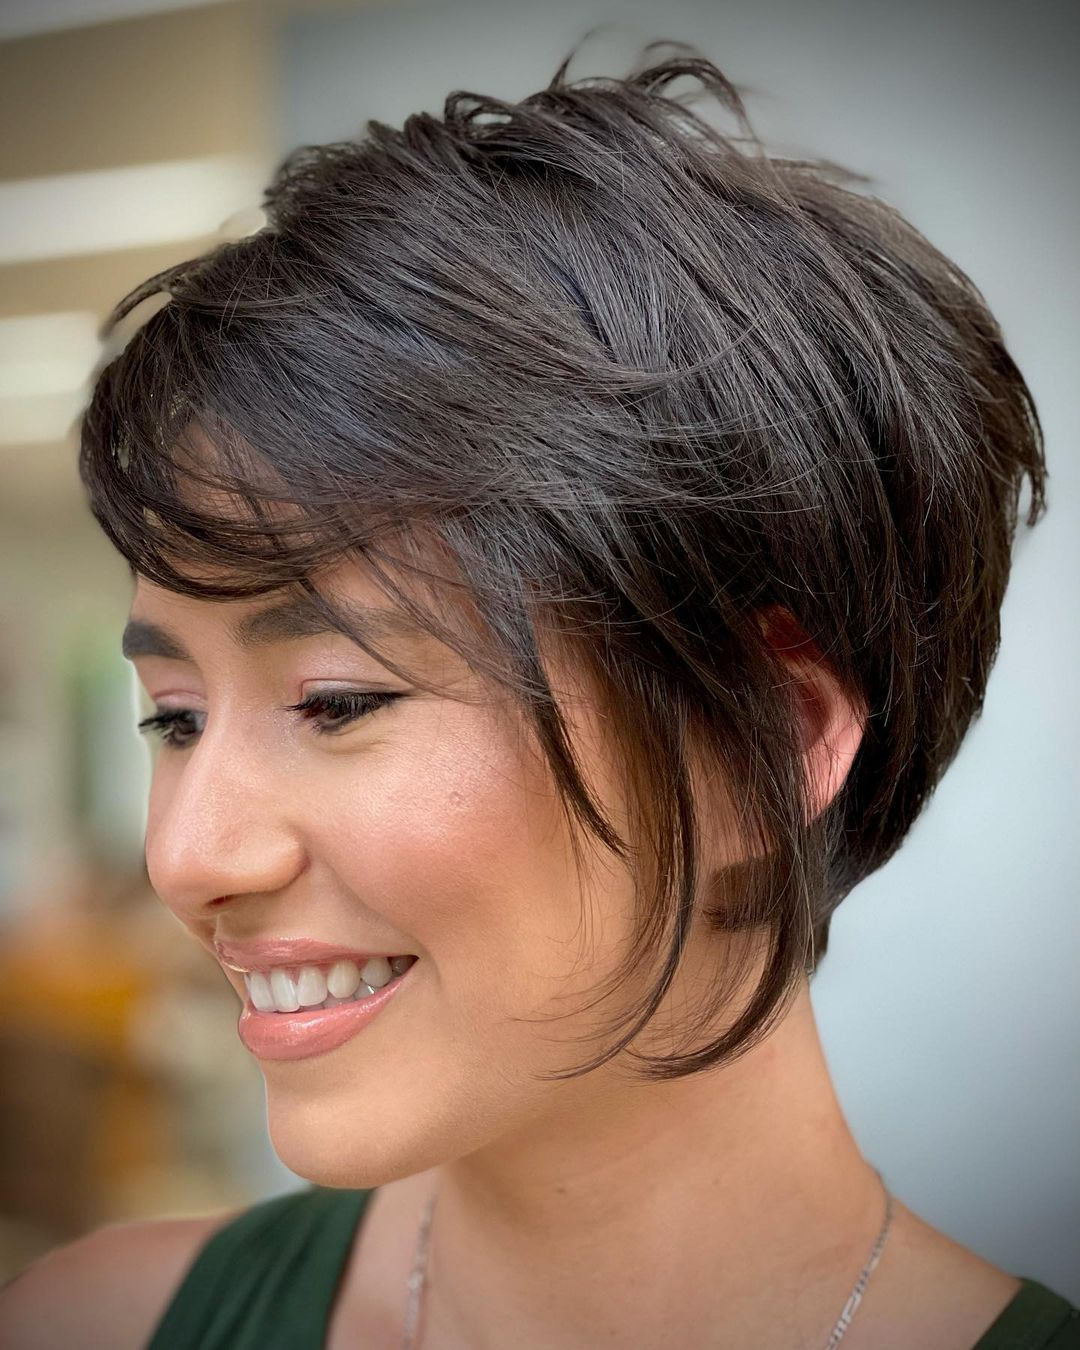 Feathered Short Shag for Thick Hair